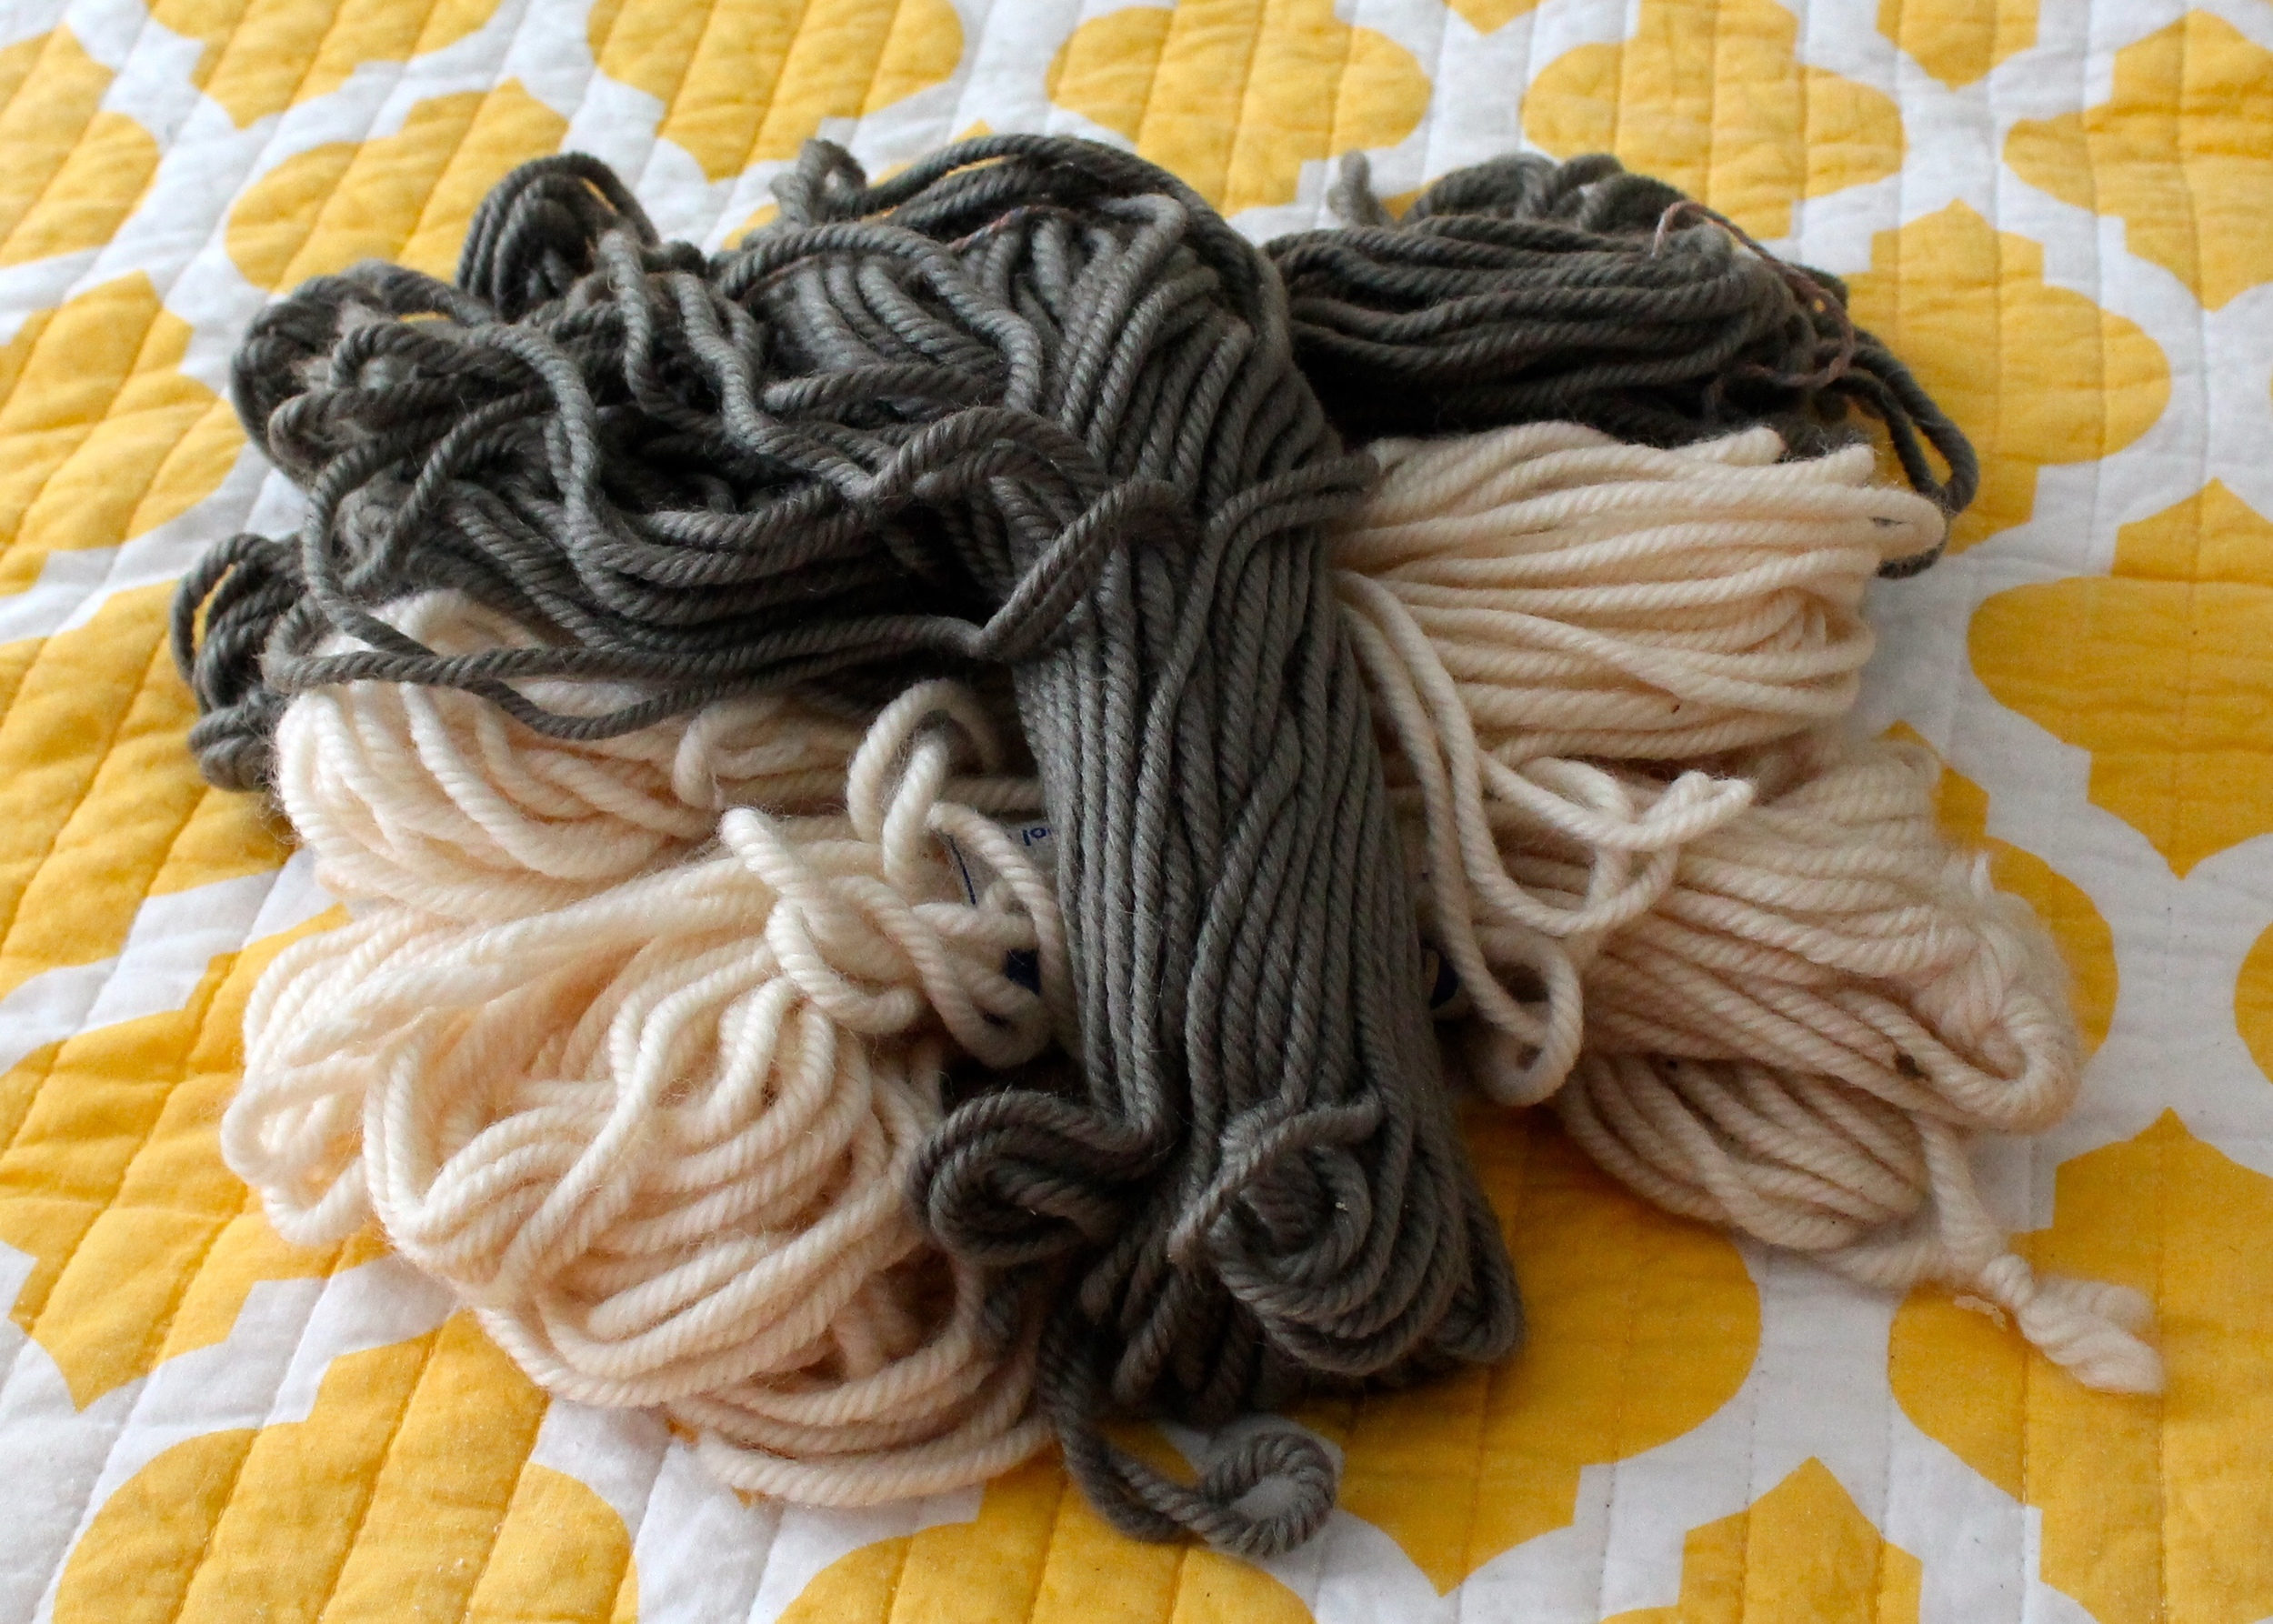 Pile of wool yarn in gray and cream